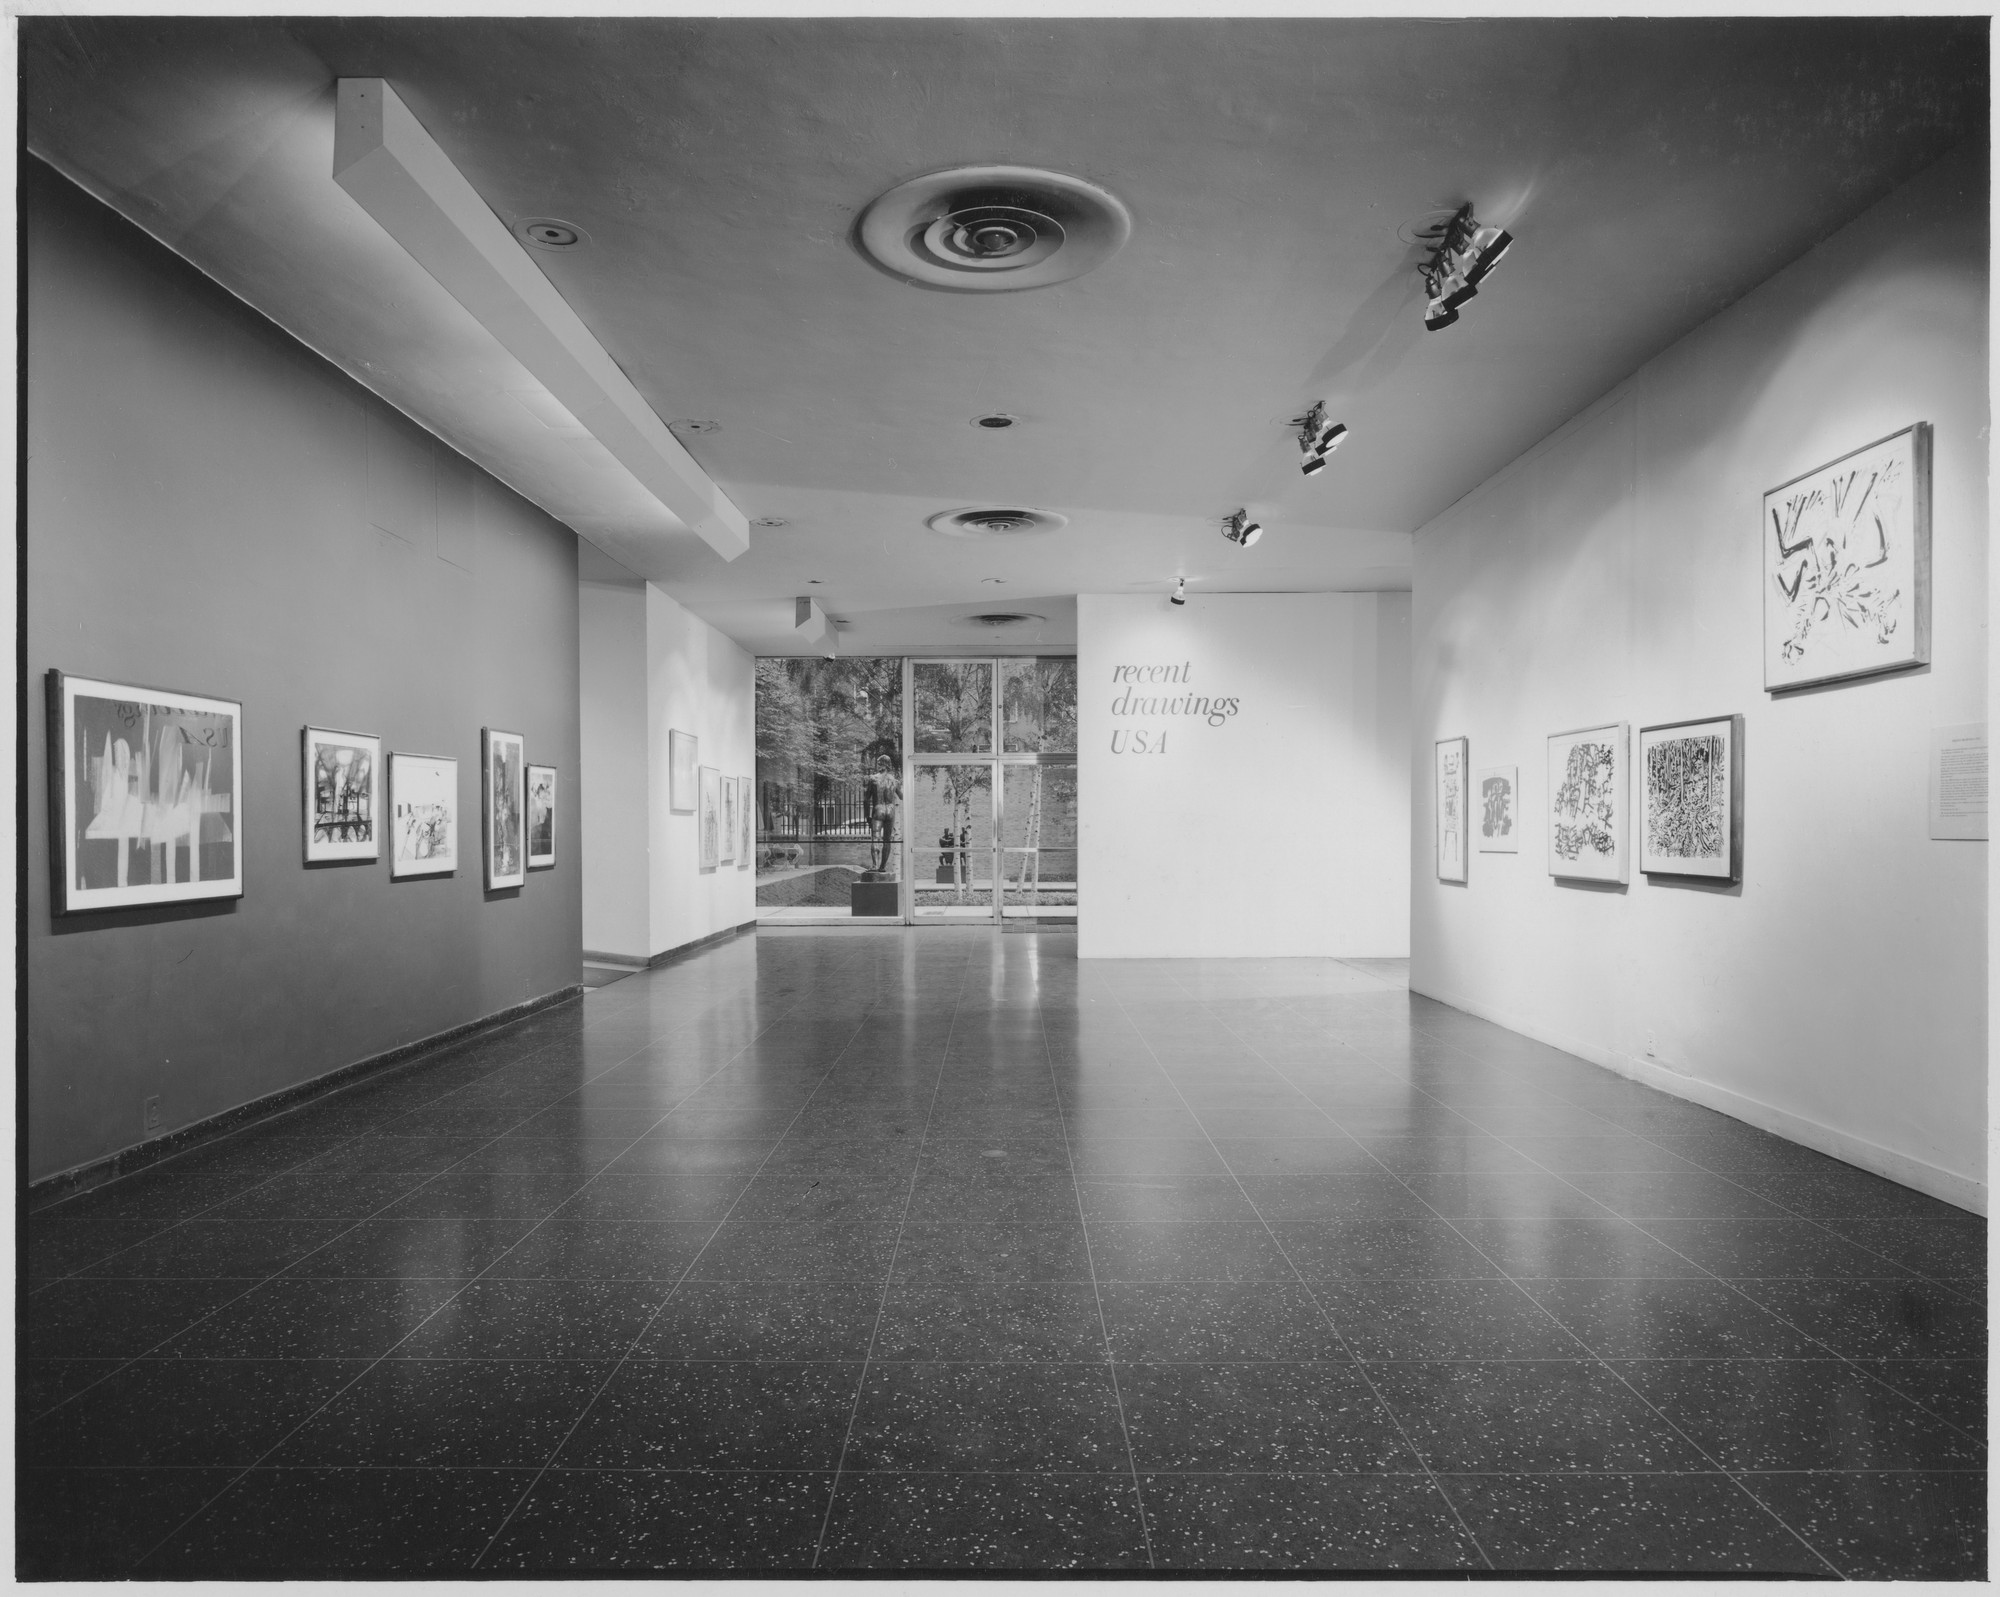 "Installation view of the exhibition, ""Recent Drawings U.S.A."" April 25, 1956–August 25, 1956. Photographic Archive. The Museum of Modern Art Archives, New York. IN601.1. Photograph by Alexandre Georges."